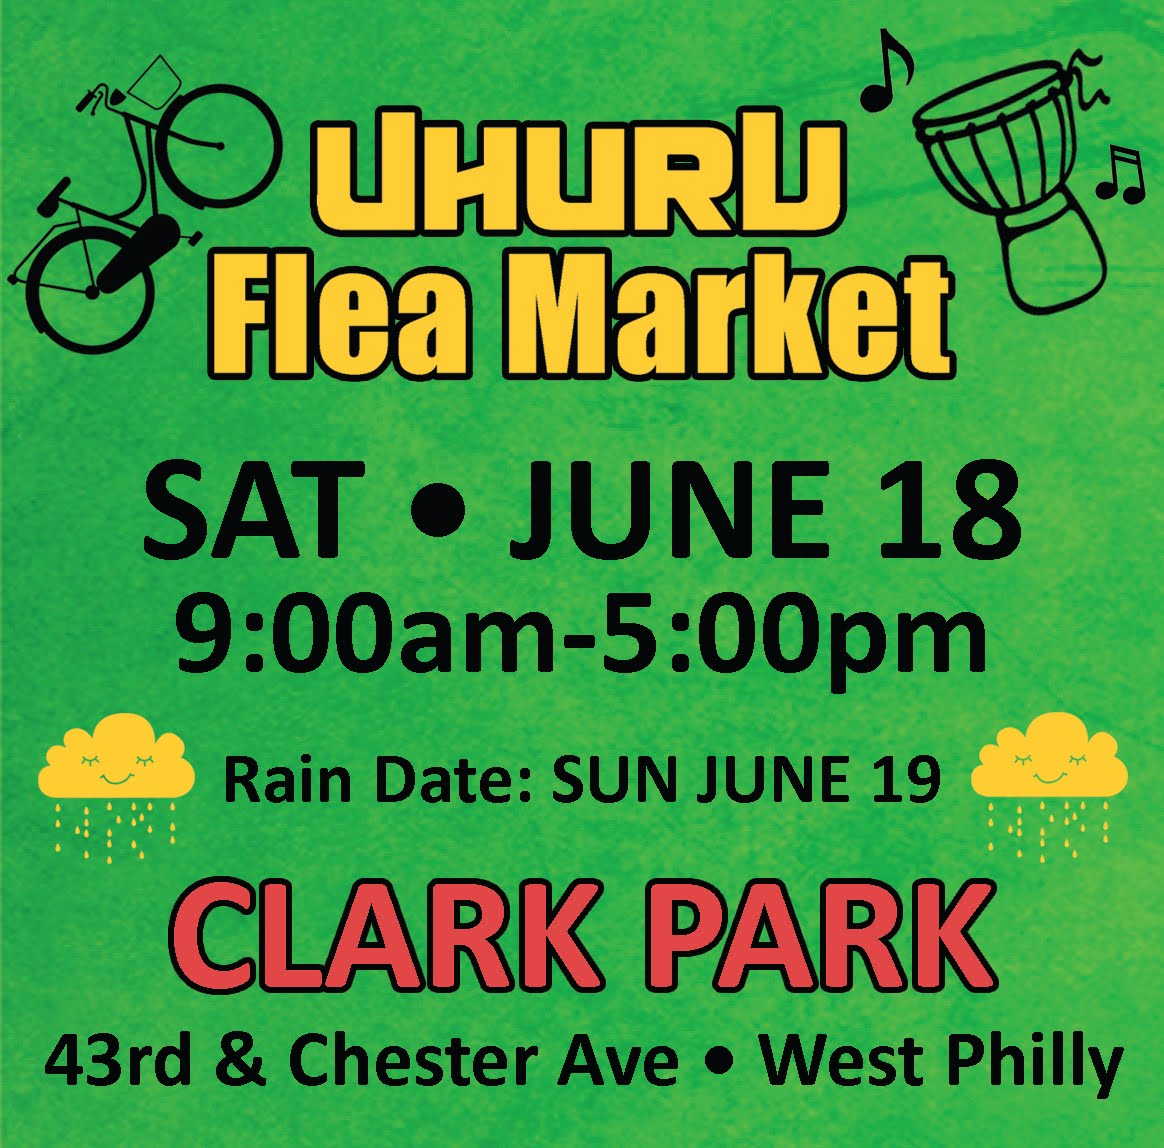 Uhuru Flea Market - SAT JUNE 18th!